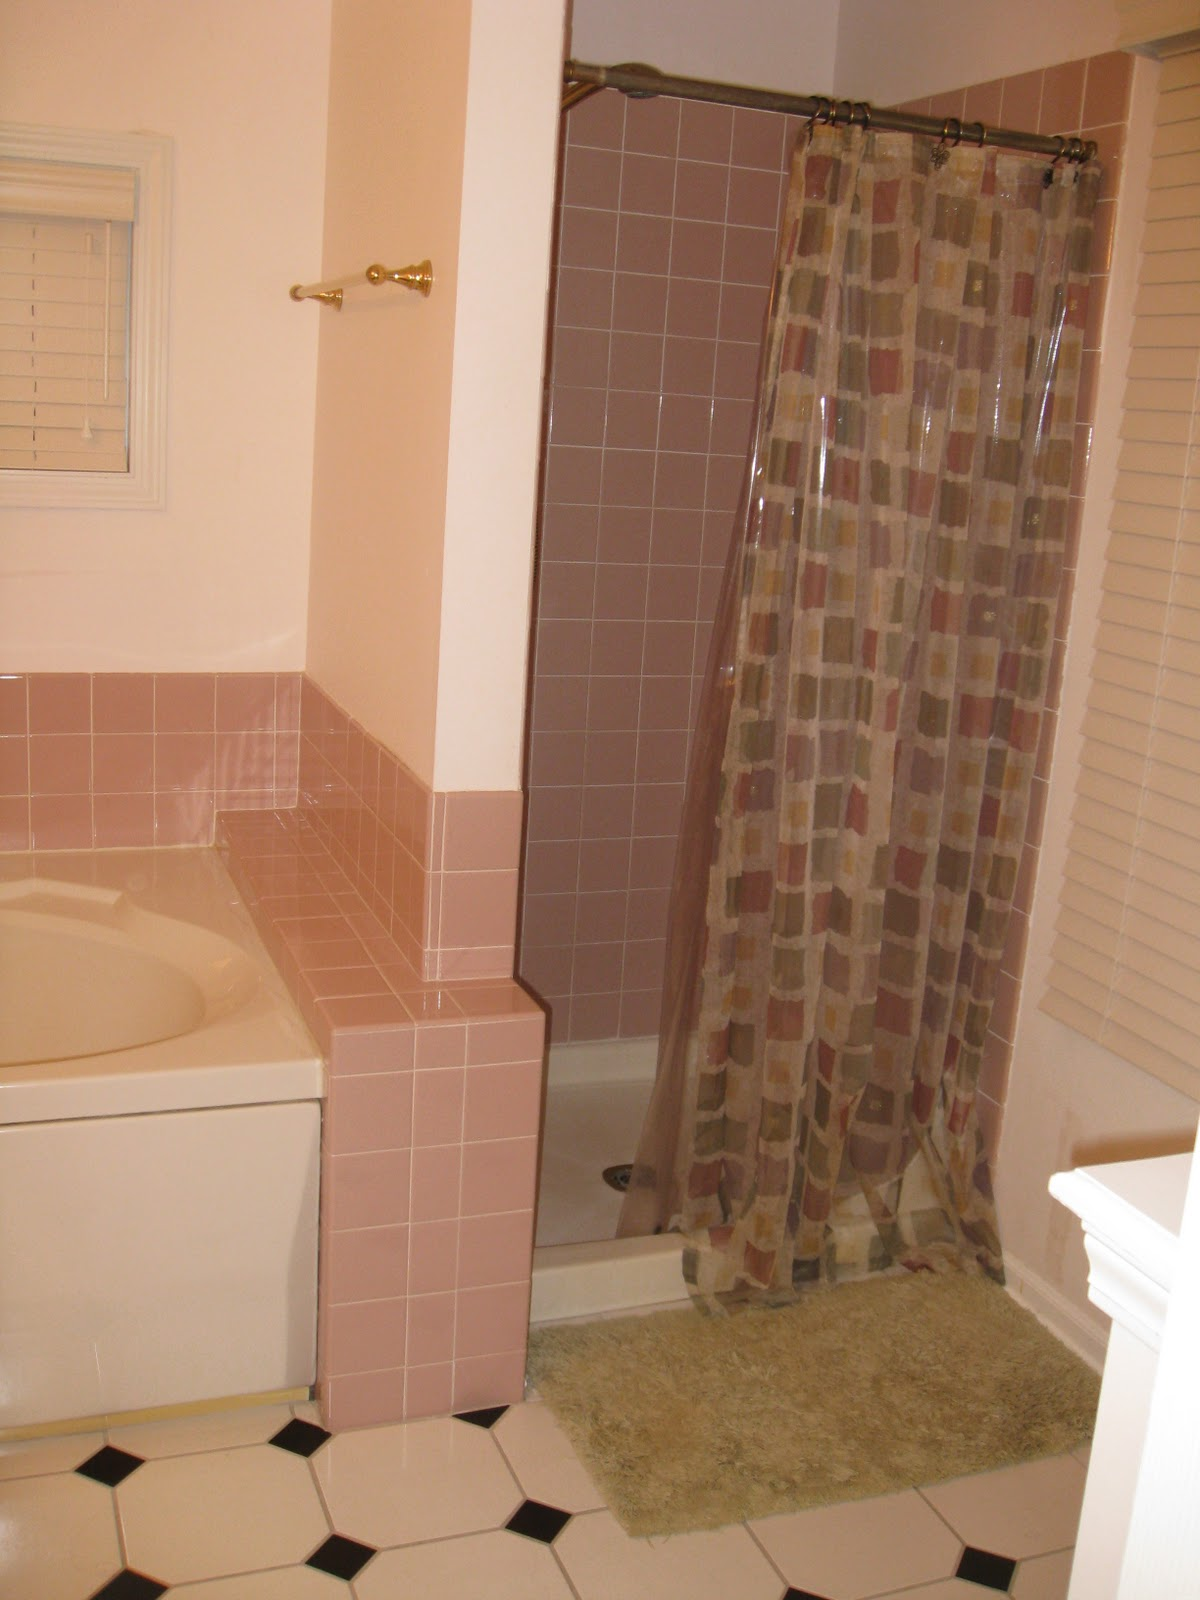 Honest And Truly The Great Bathroom Remodel - I need to redo my bathroom